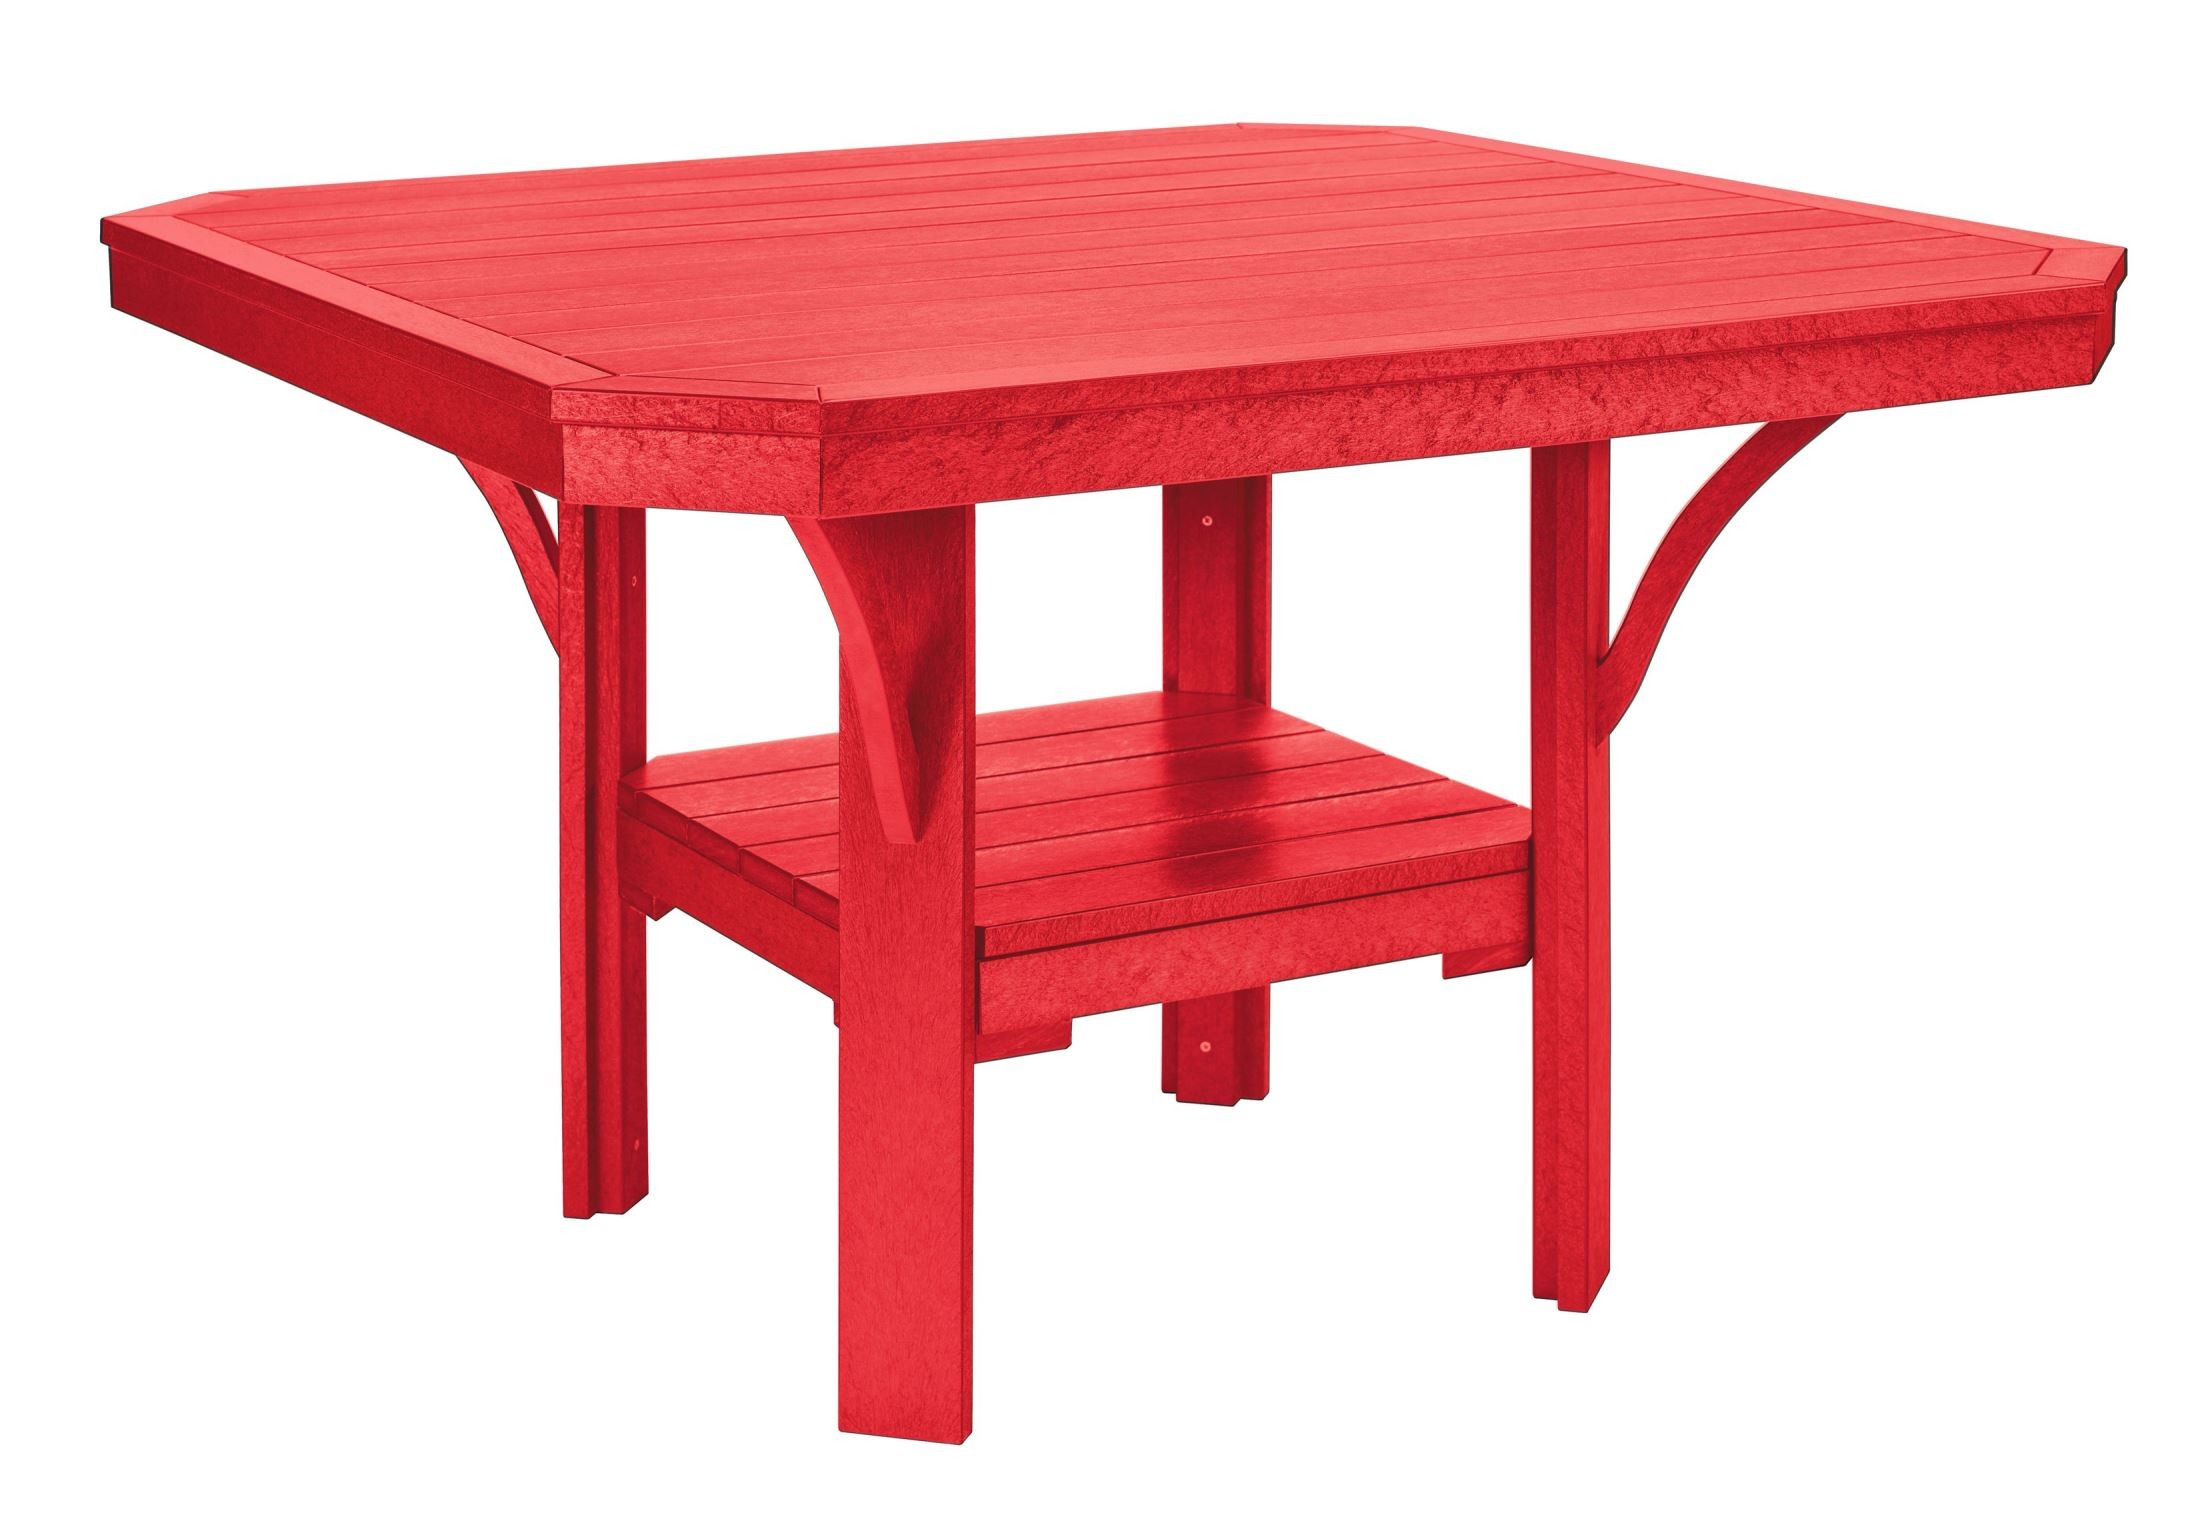 St tropez red 45 square dining table from cr plastic t35 for Red dining table